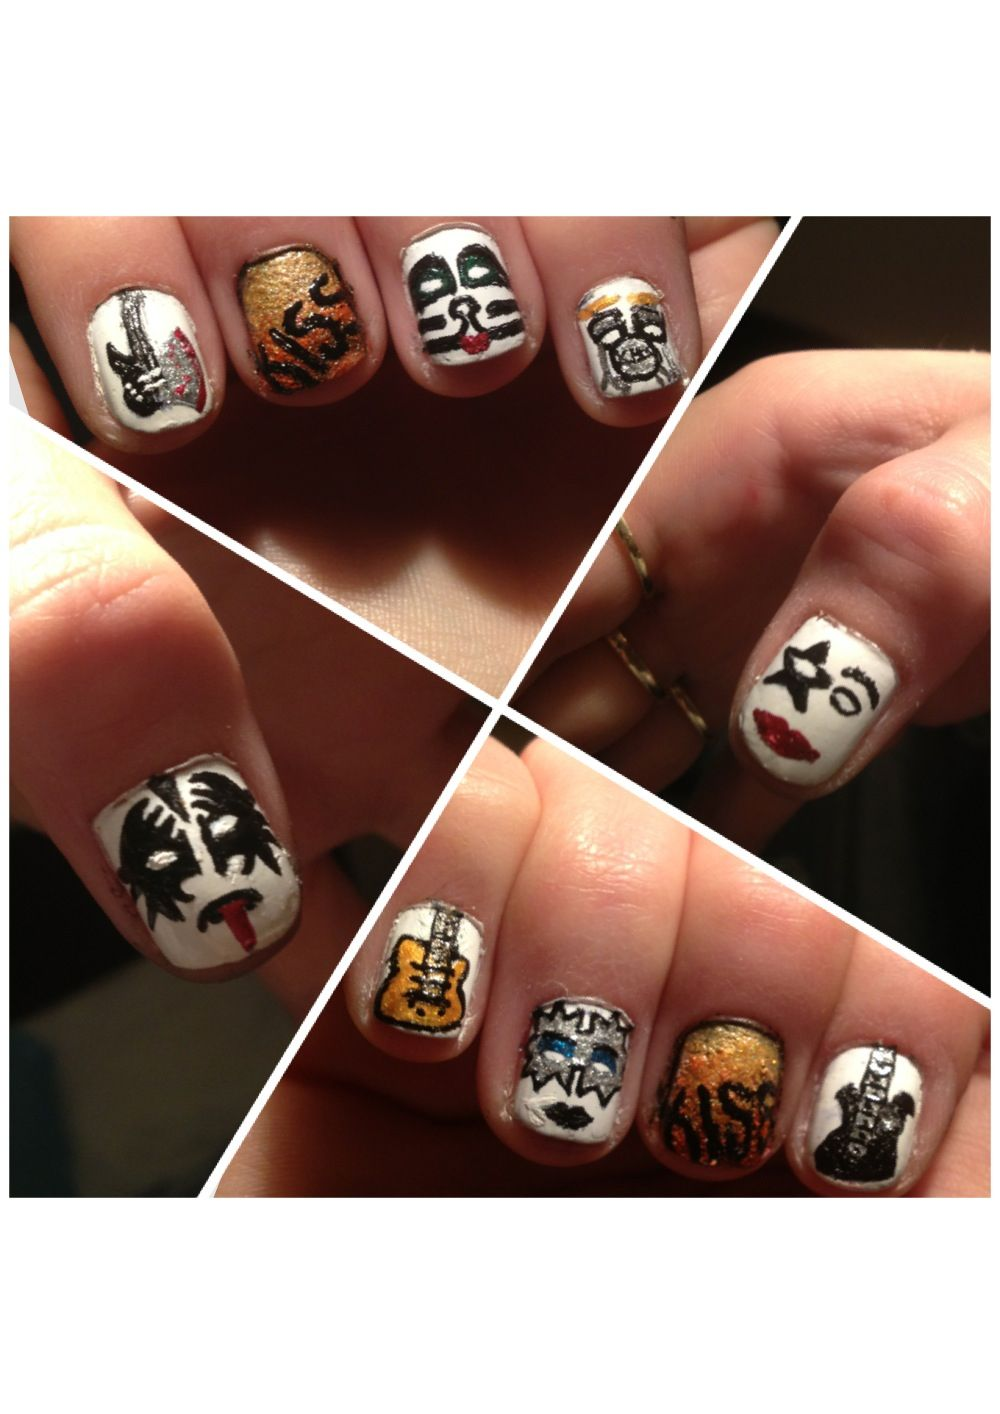 My kiss nails :)